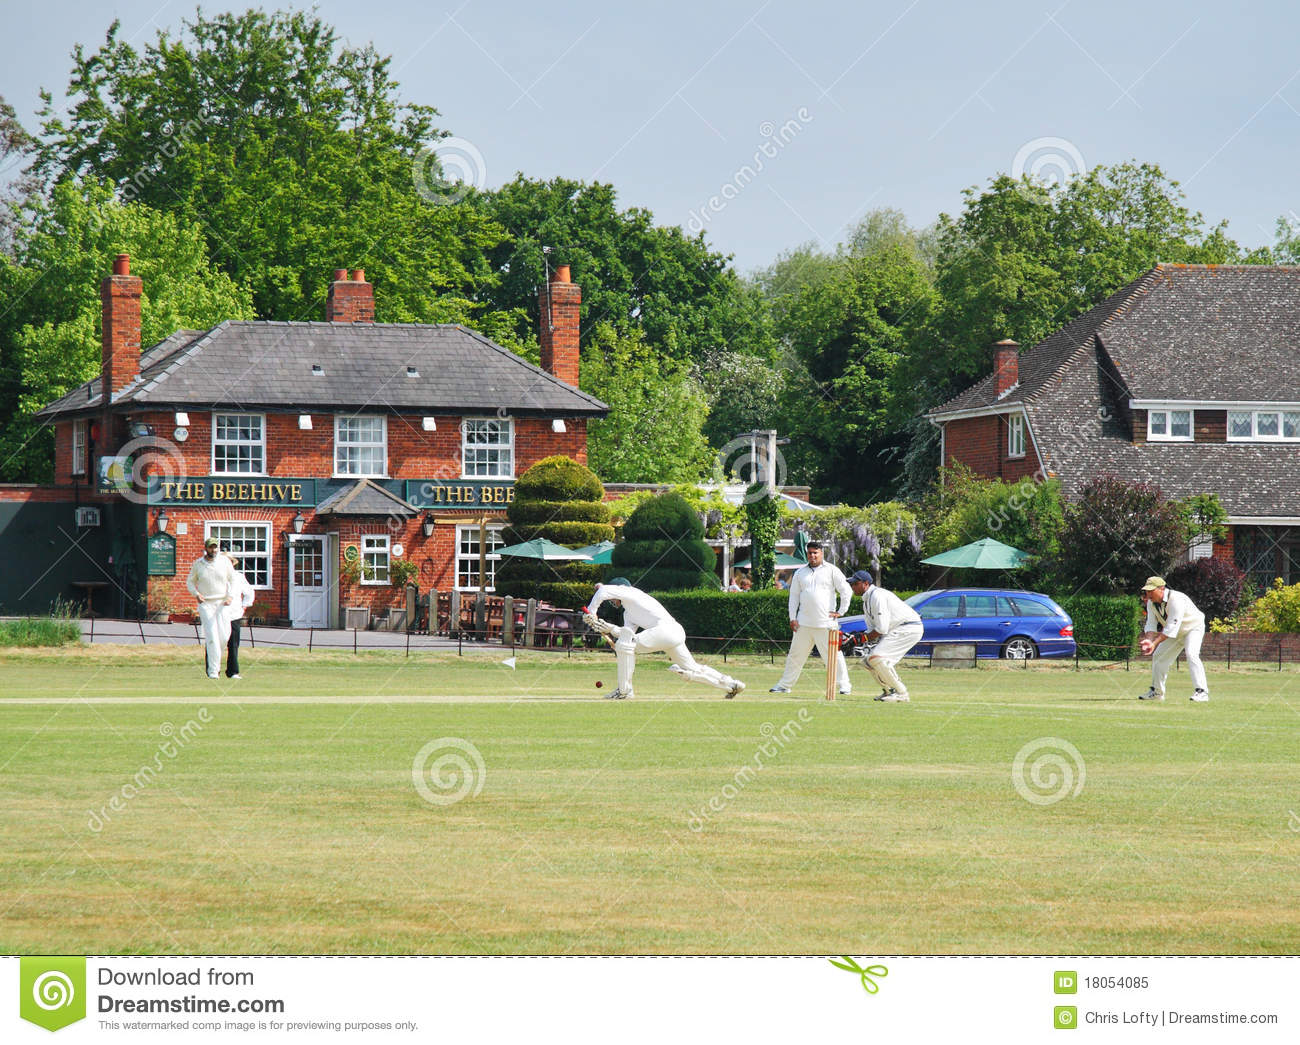 a village cricket match 2 essay Cricket essay 2 (150 words) cricket cricket match is played with two teams of 11 players in each and whole test match contains two innings of first innings and.